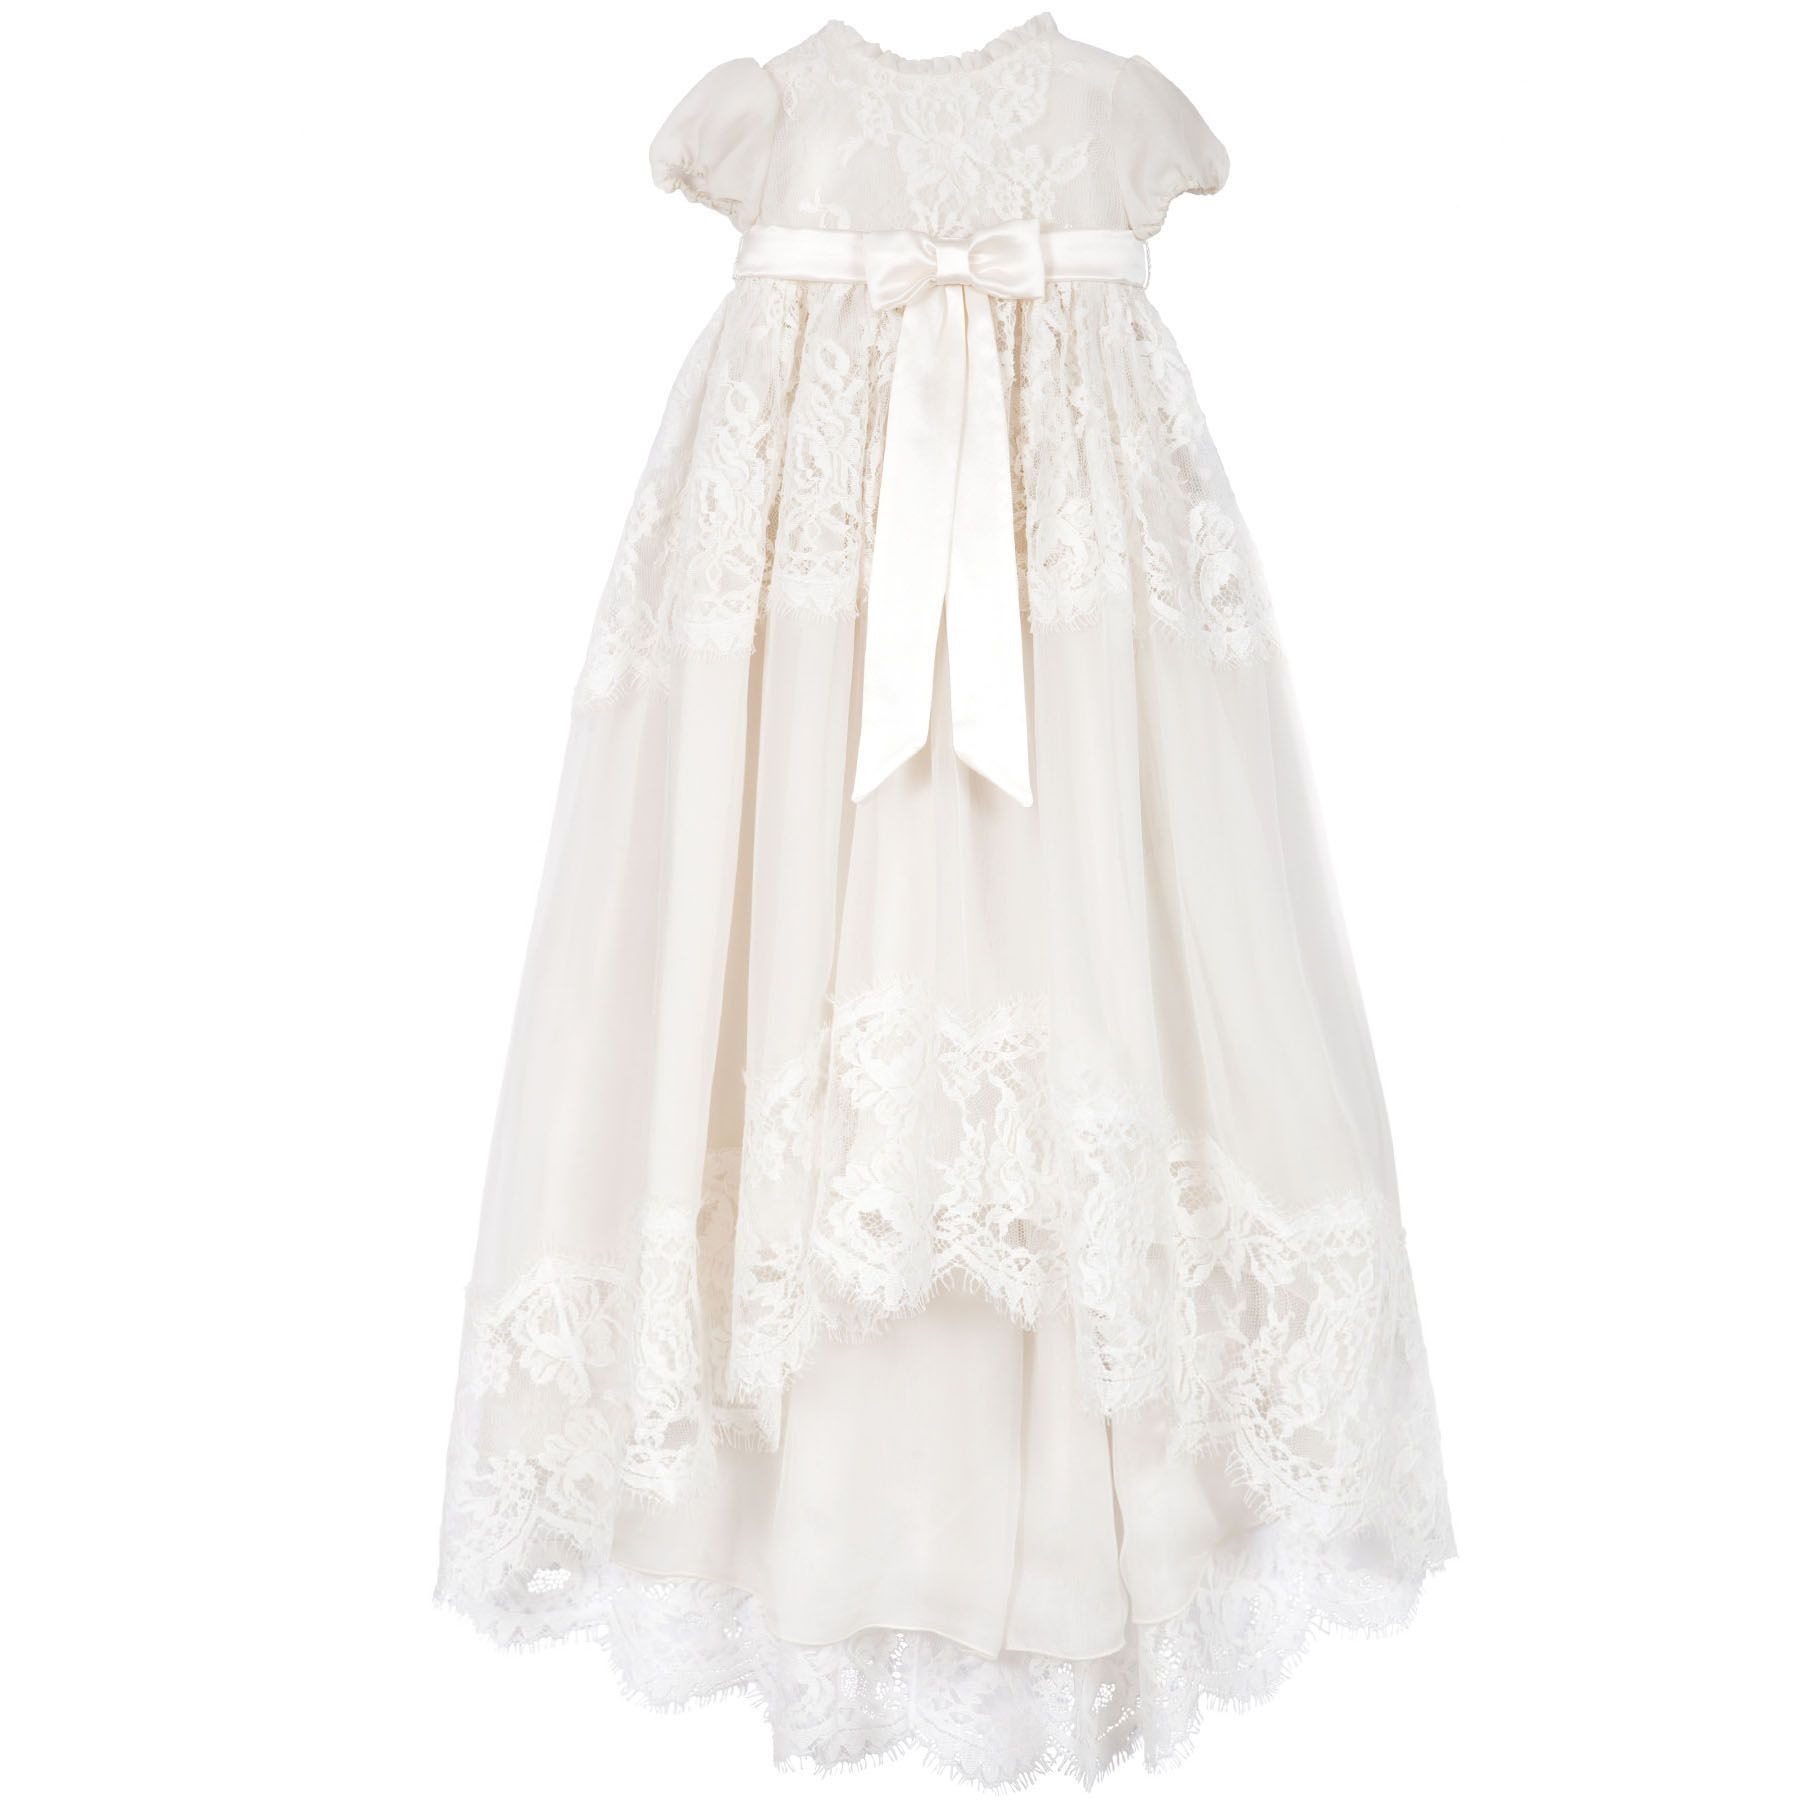 Fully lined ivory christening dress made of silk and cotton blend